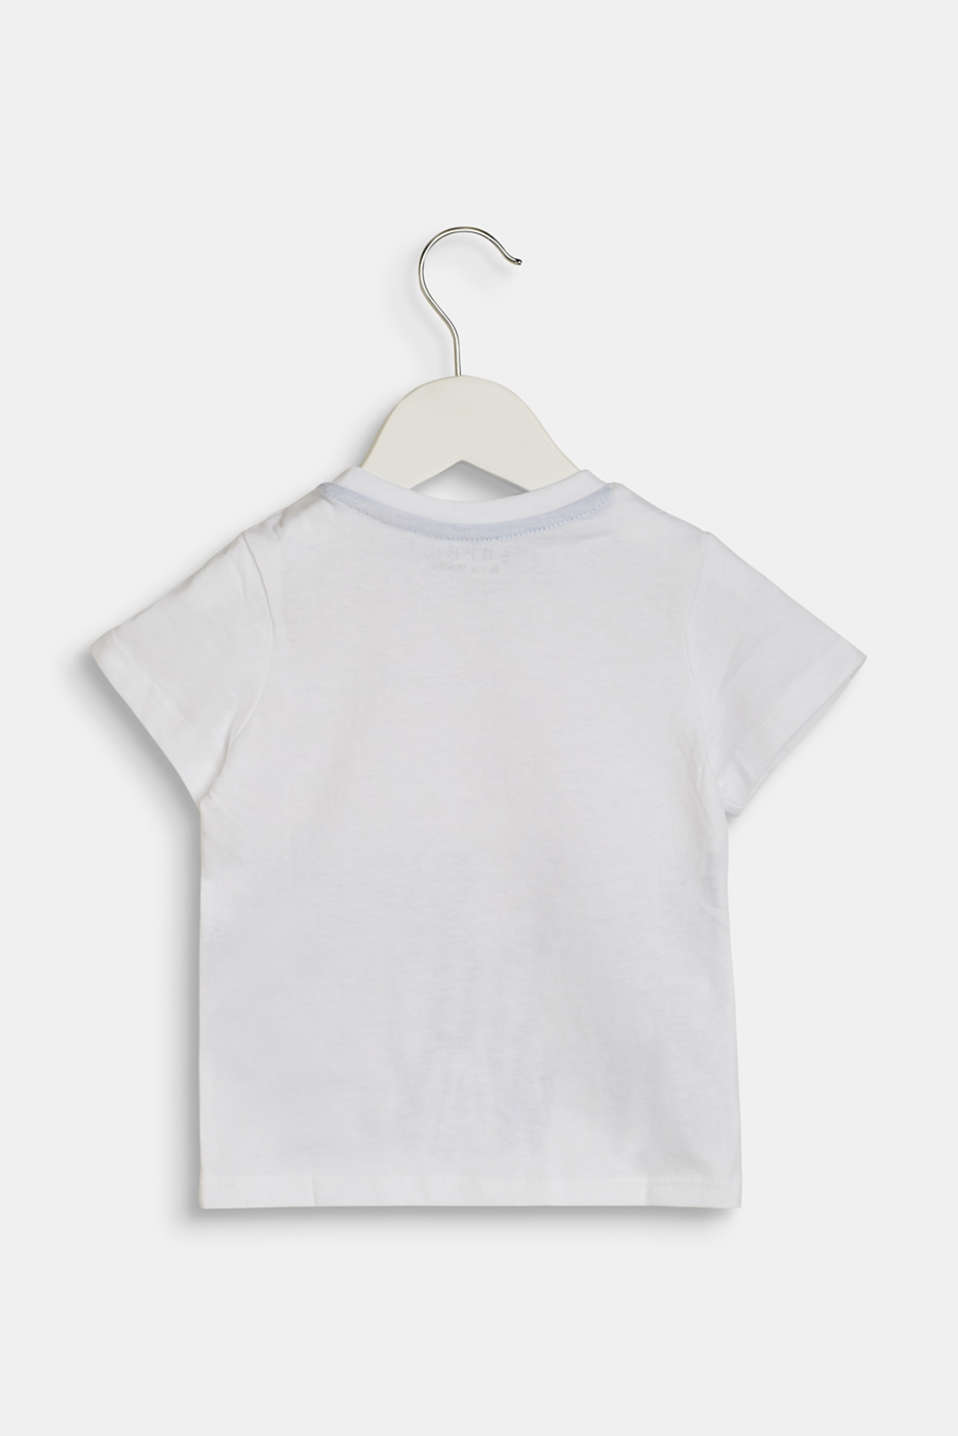 T-shirt with a statement print, made of 100% cotton, LCWHITE, detail image number 1